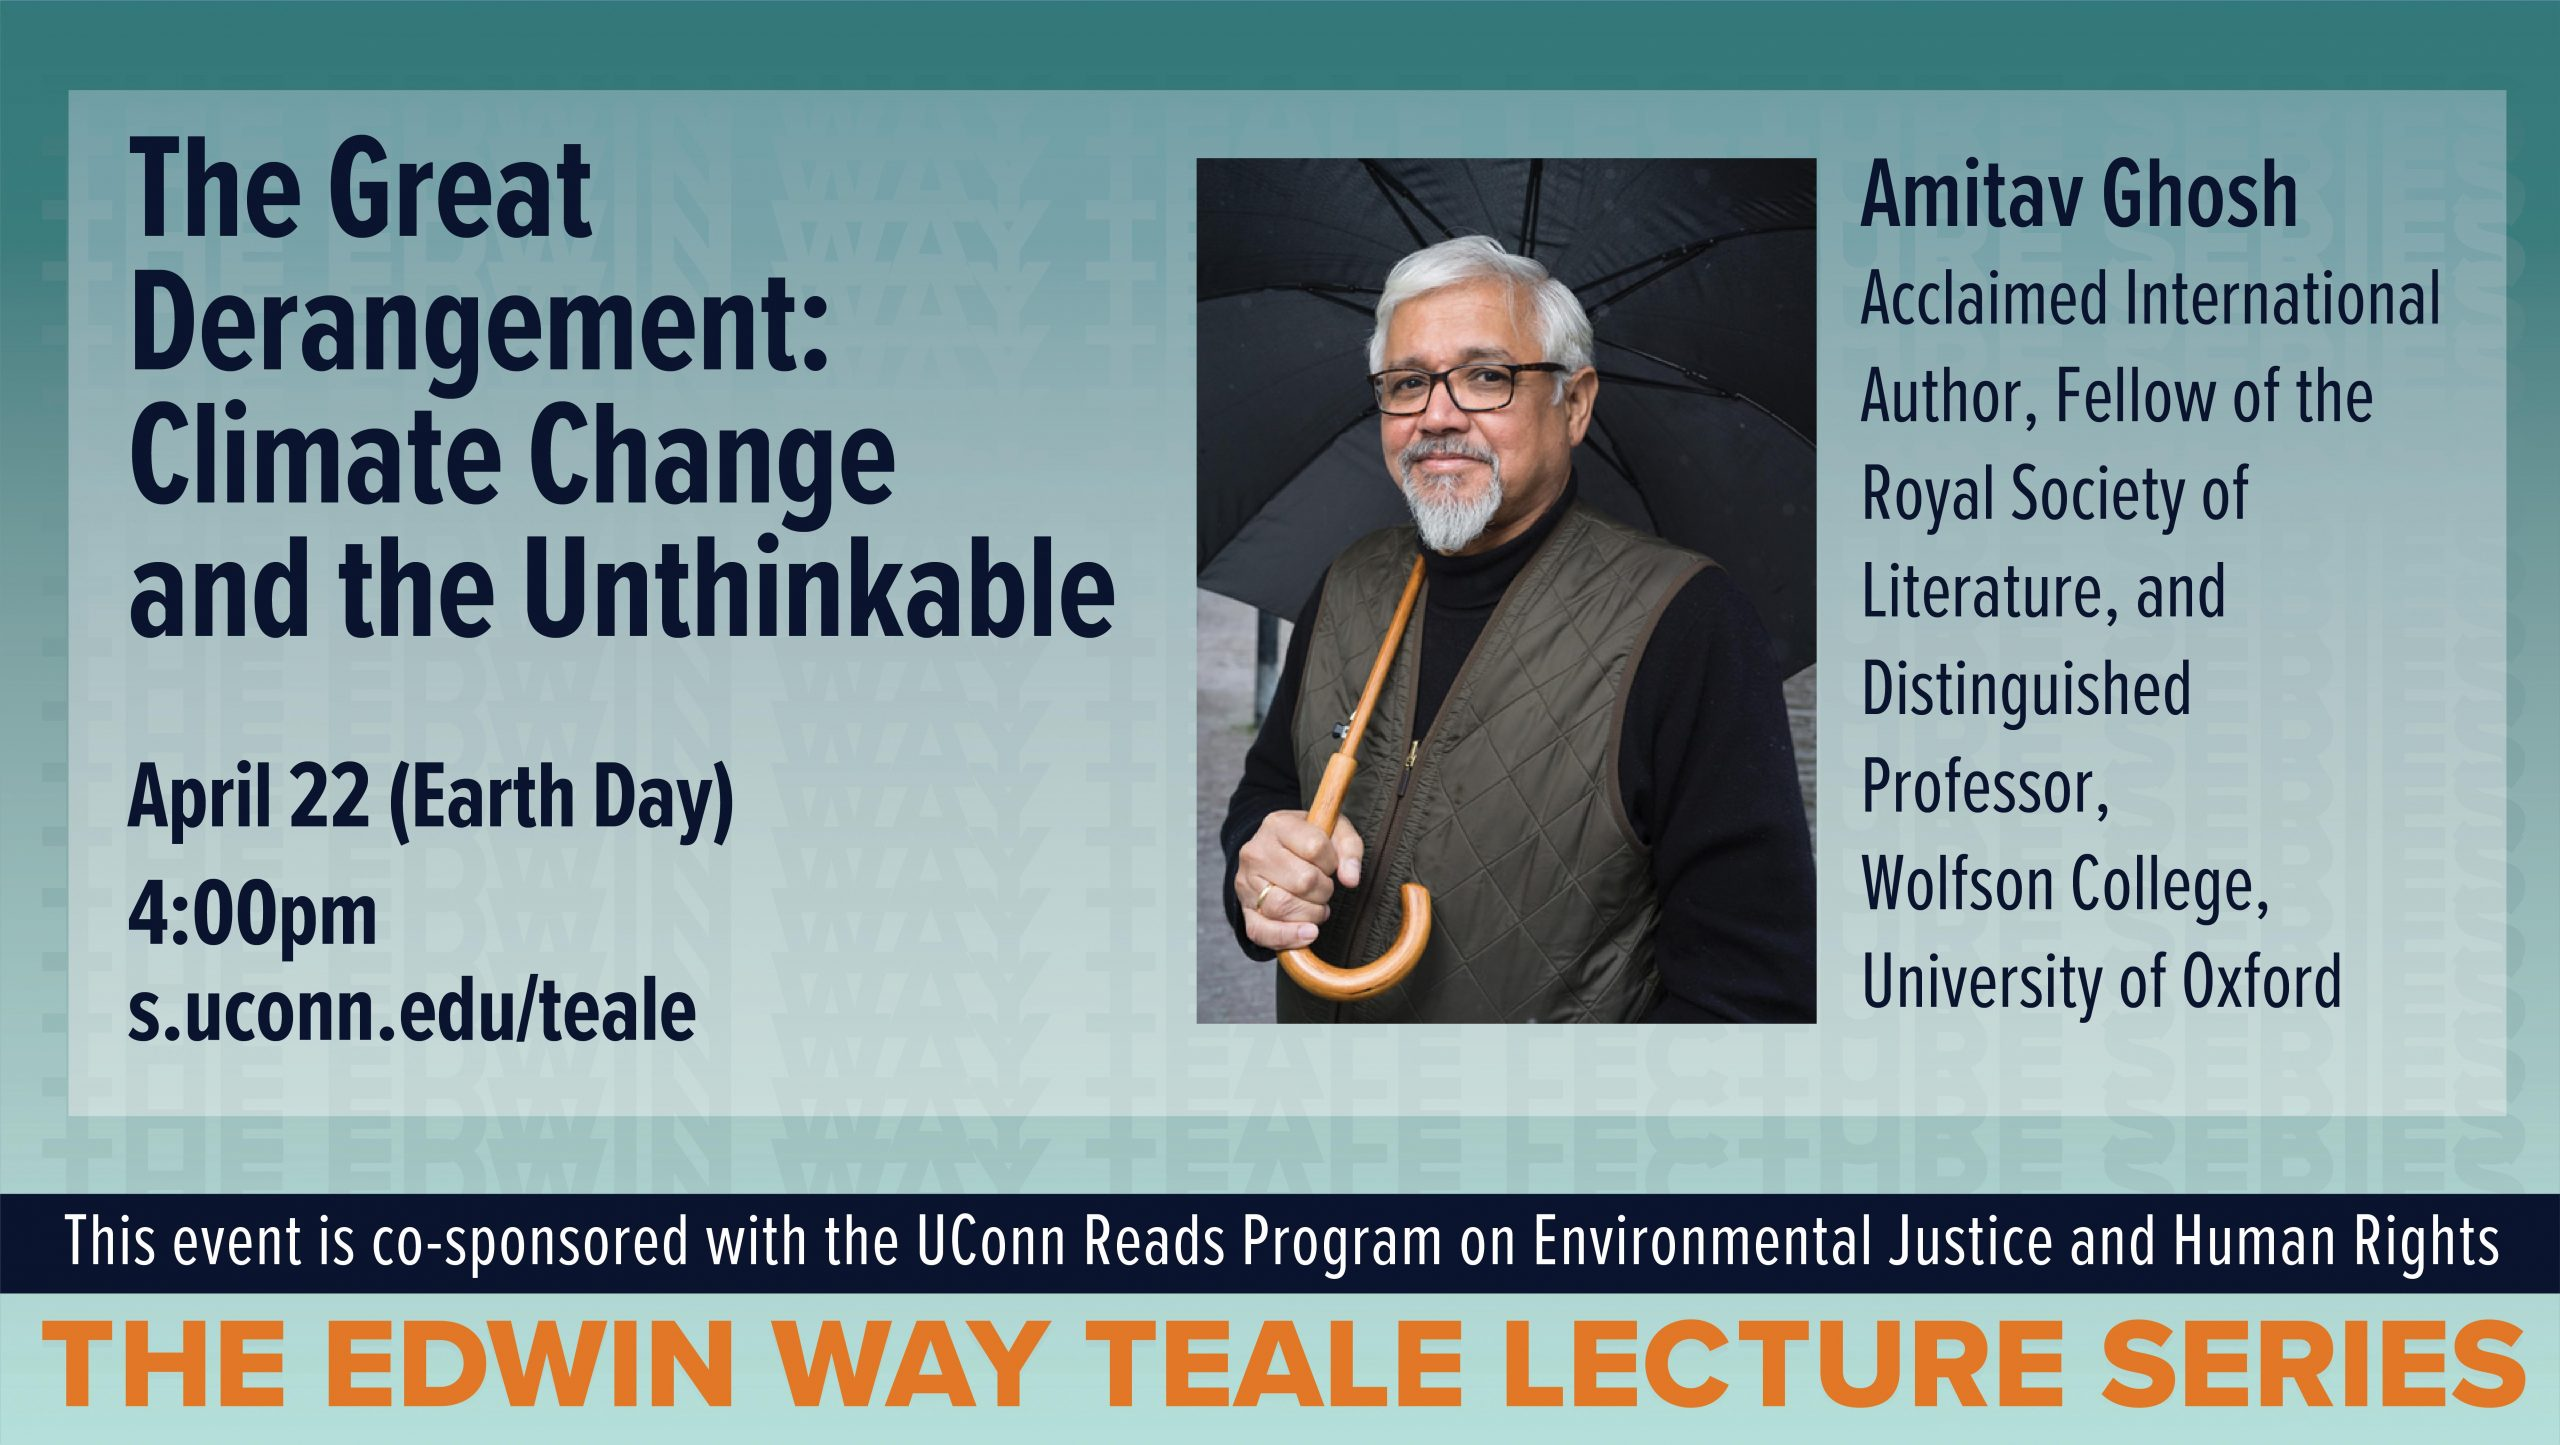 The Great Derangement: Climate Change and the Unthinkable April 22 (Earth Day)4:00pms.uconn.edu/teale, Amitav Ghosh Acclaimed International Author, Fellow of the Royal Society of Literature, and Distinguished Professor, Wolfson College, University of Oxford, the Edwin Way Teale Lecture Series This event is co-sponsored with the UConn Reads Program on Environmental Justice and Human Rights